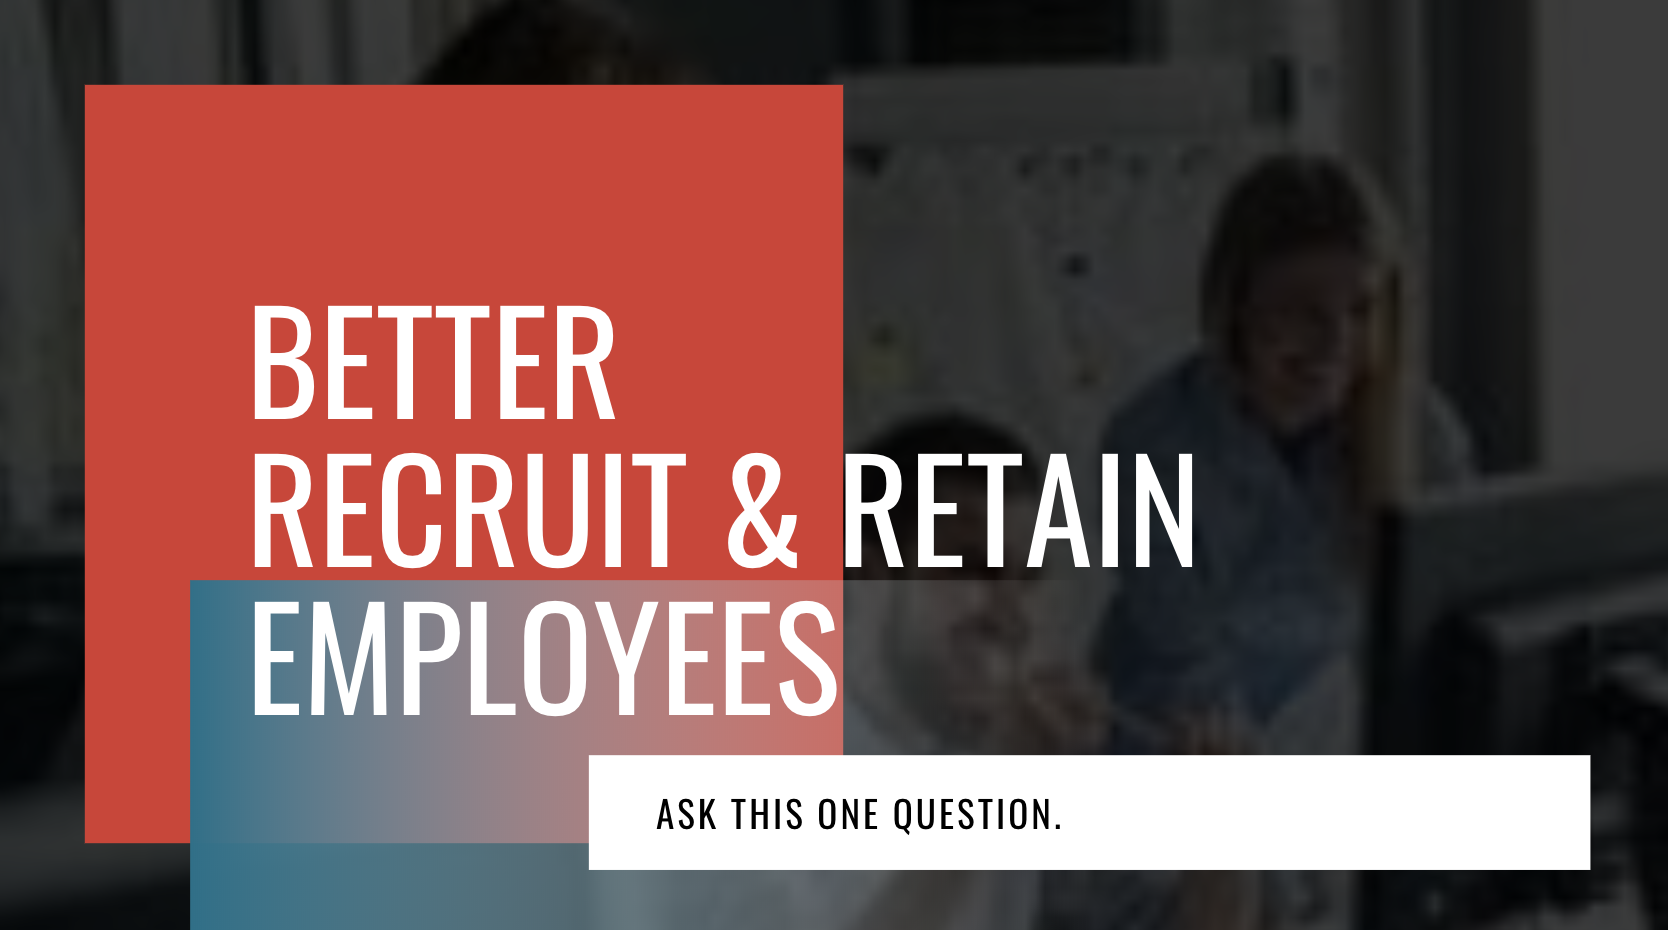 recruit and retain employees